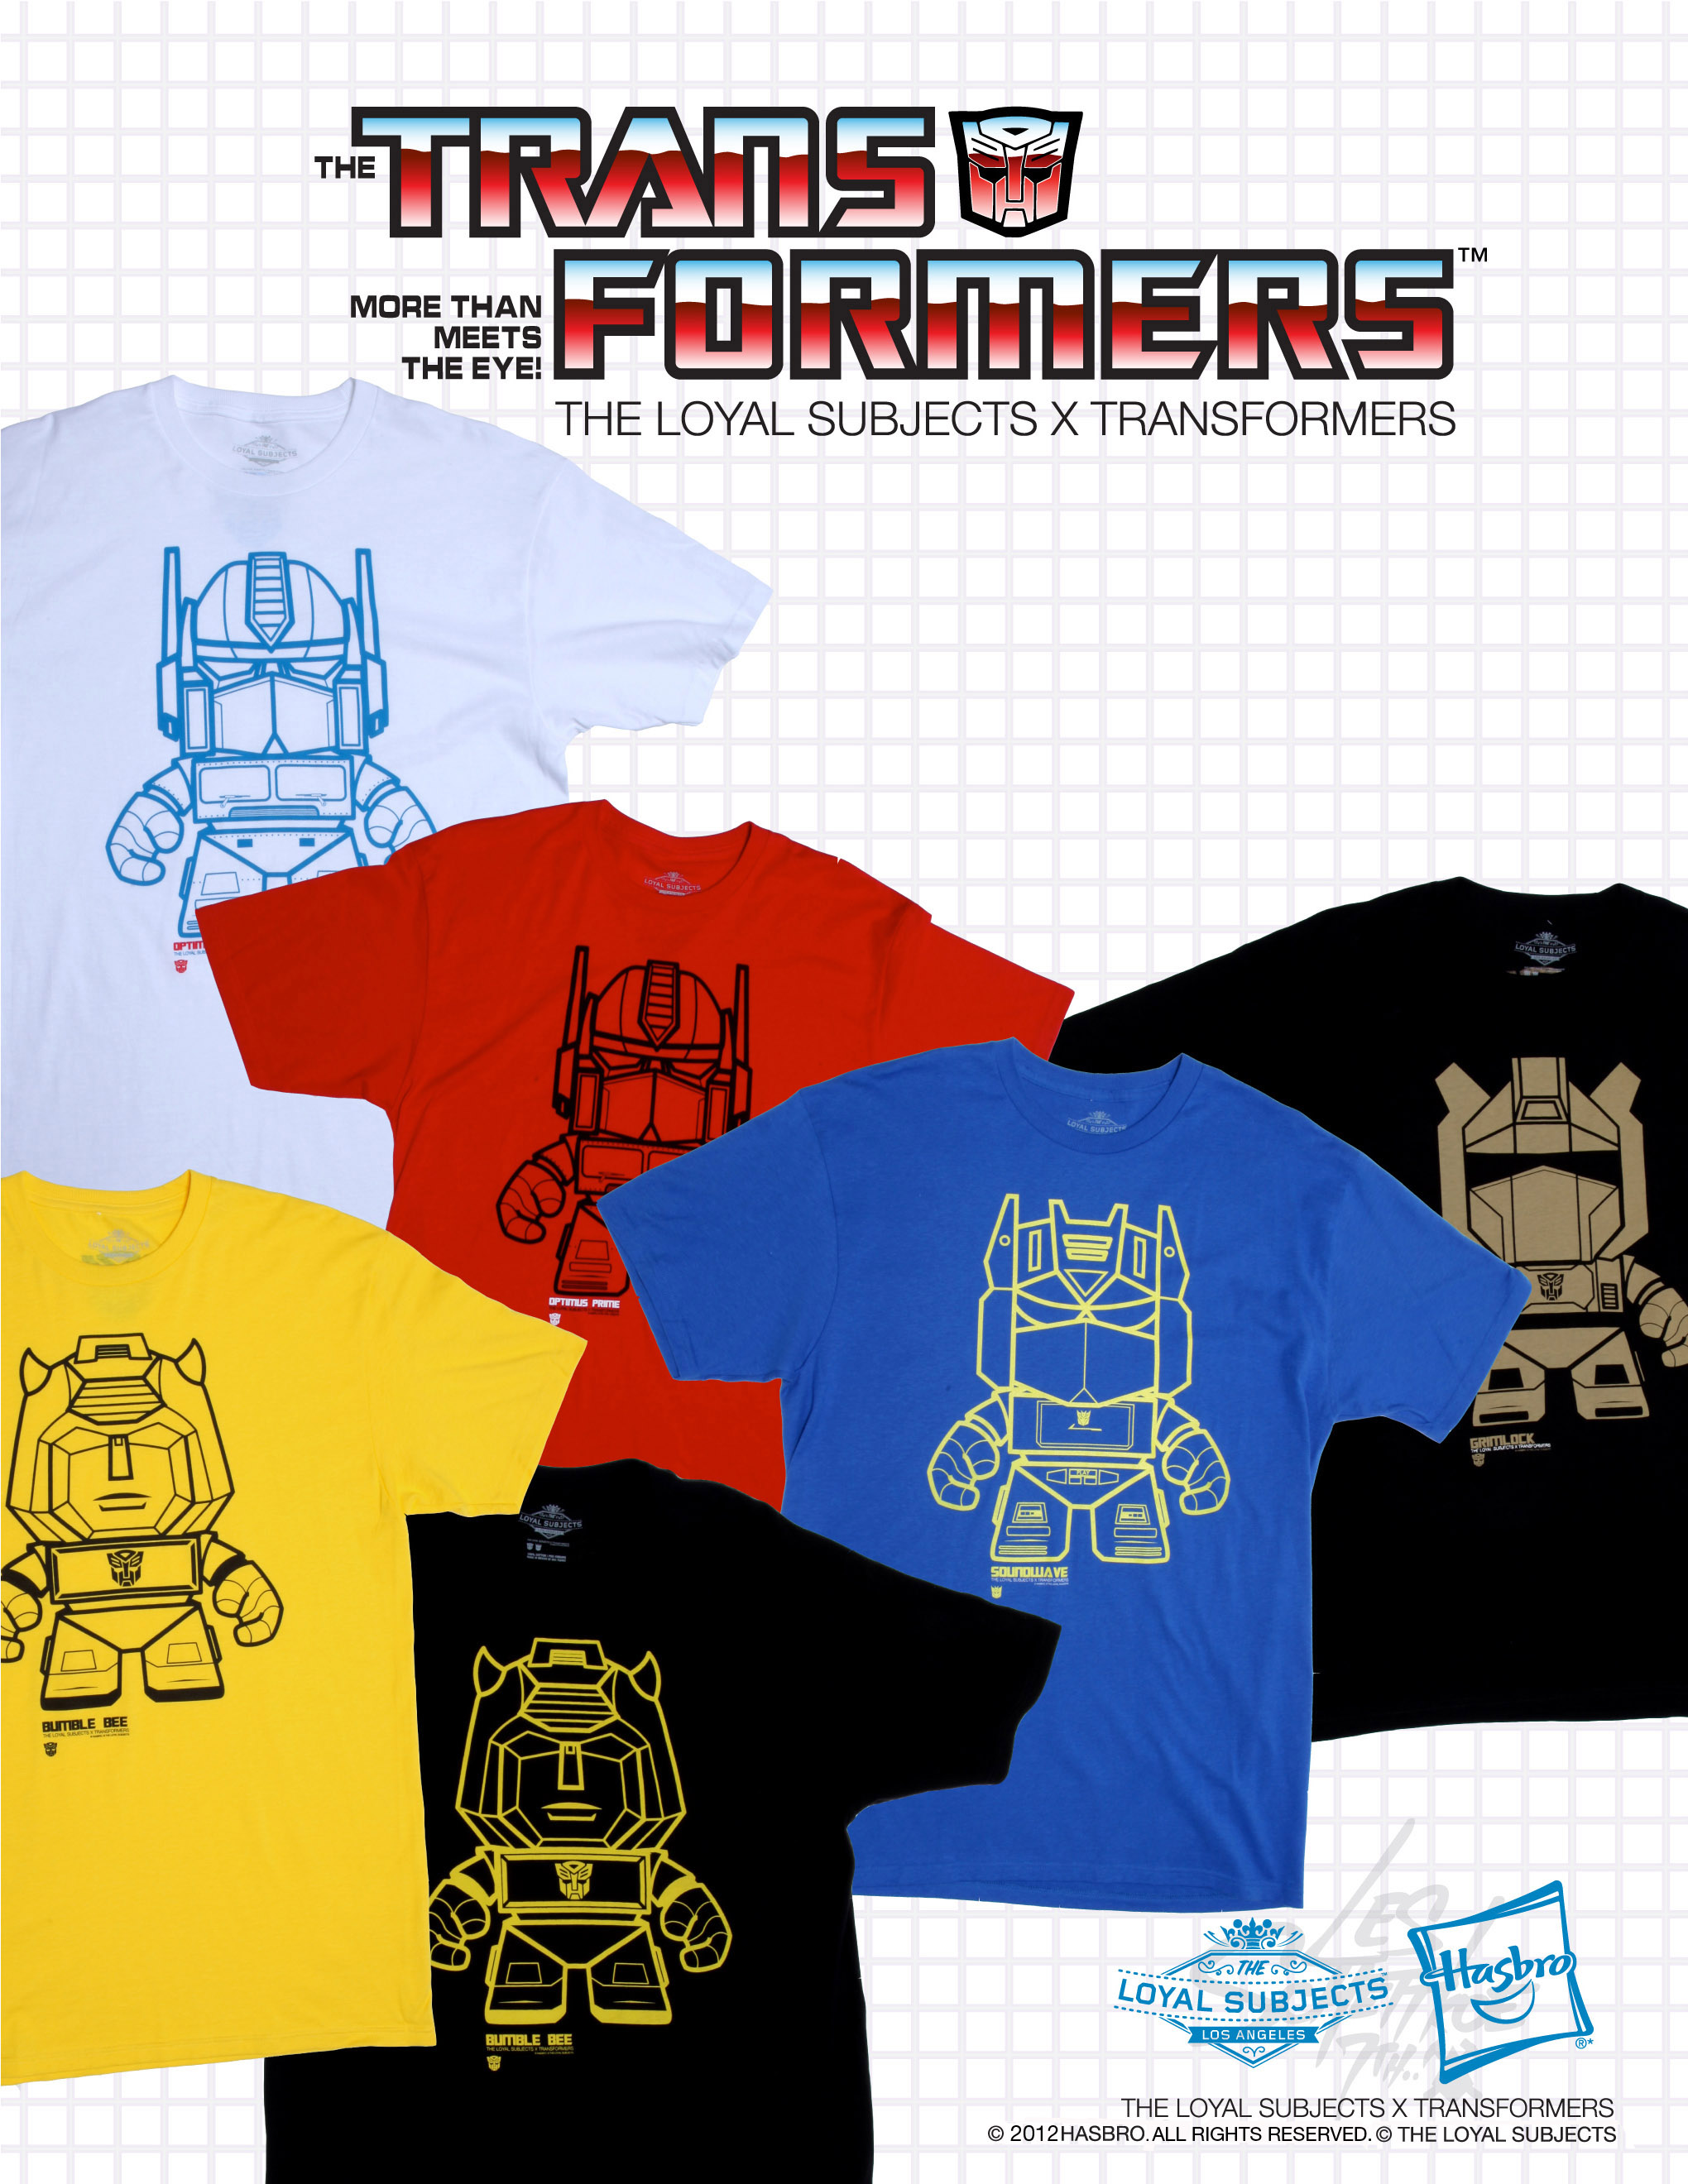 The Loyal Subjects reveals upcoming exclusives and more with their licensed Transformers merchandise